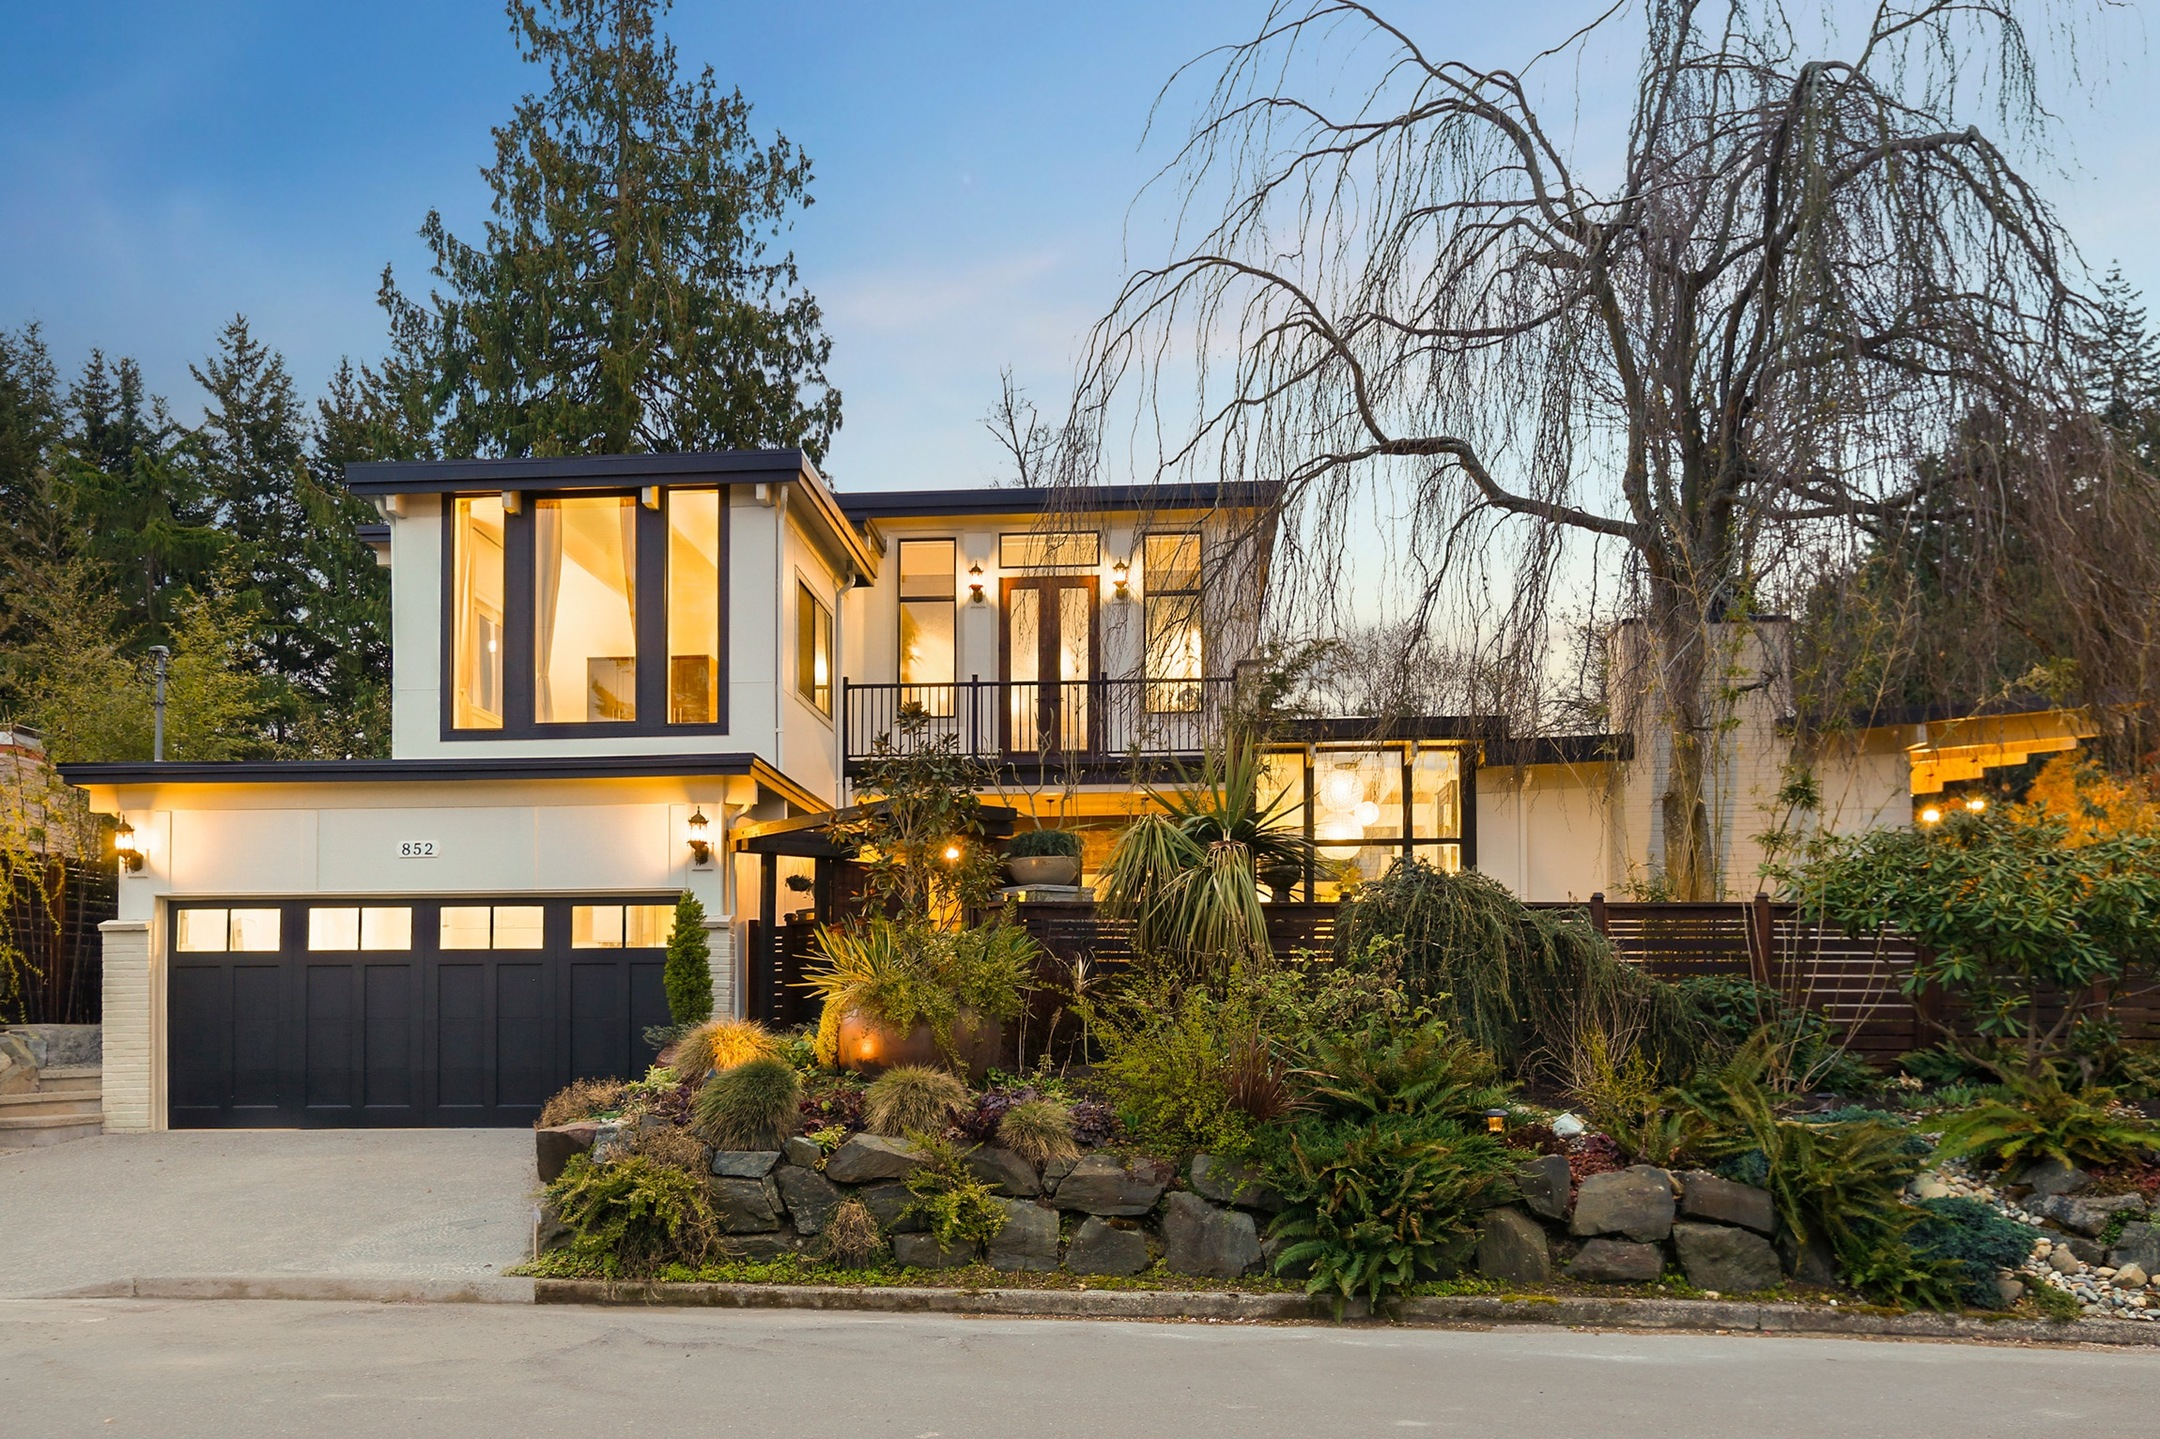 Modern style home at dusk